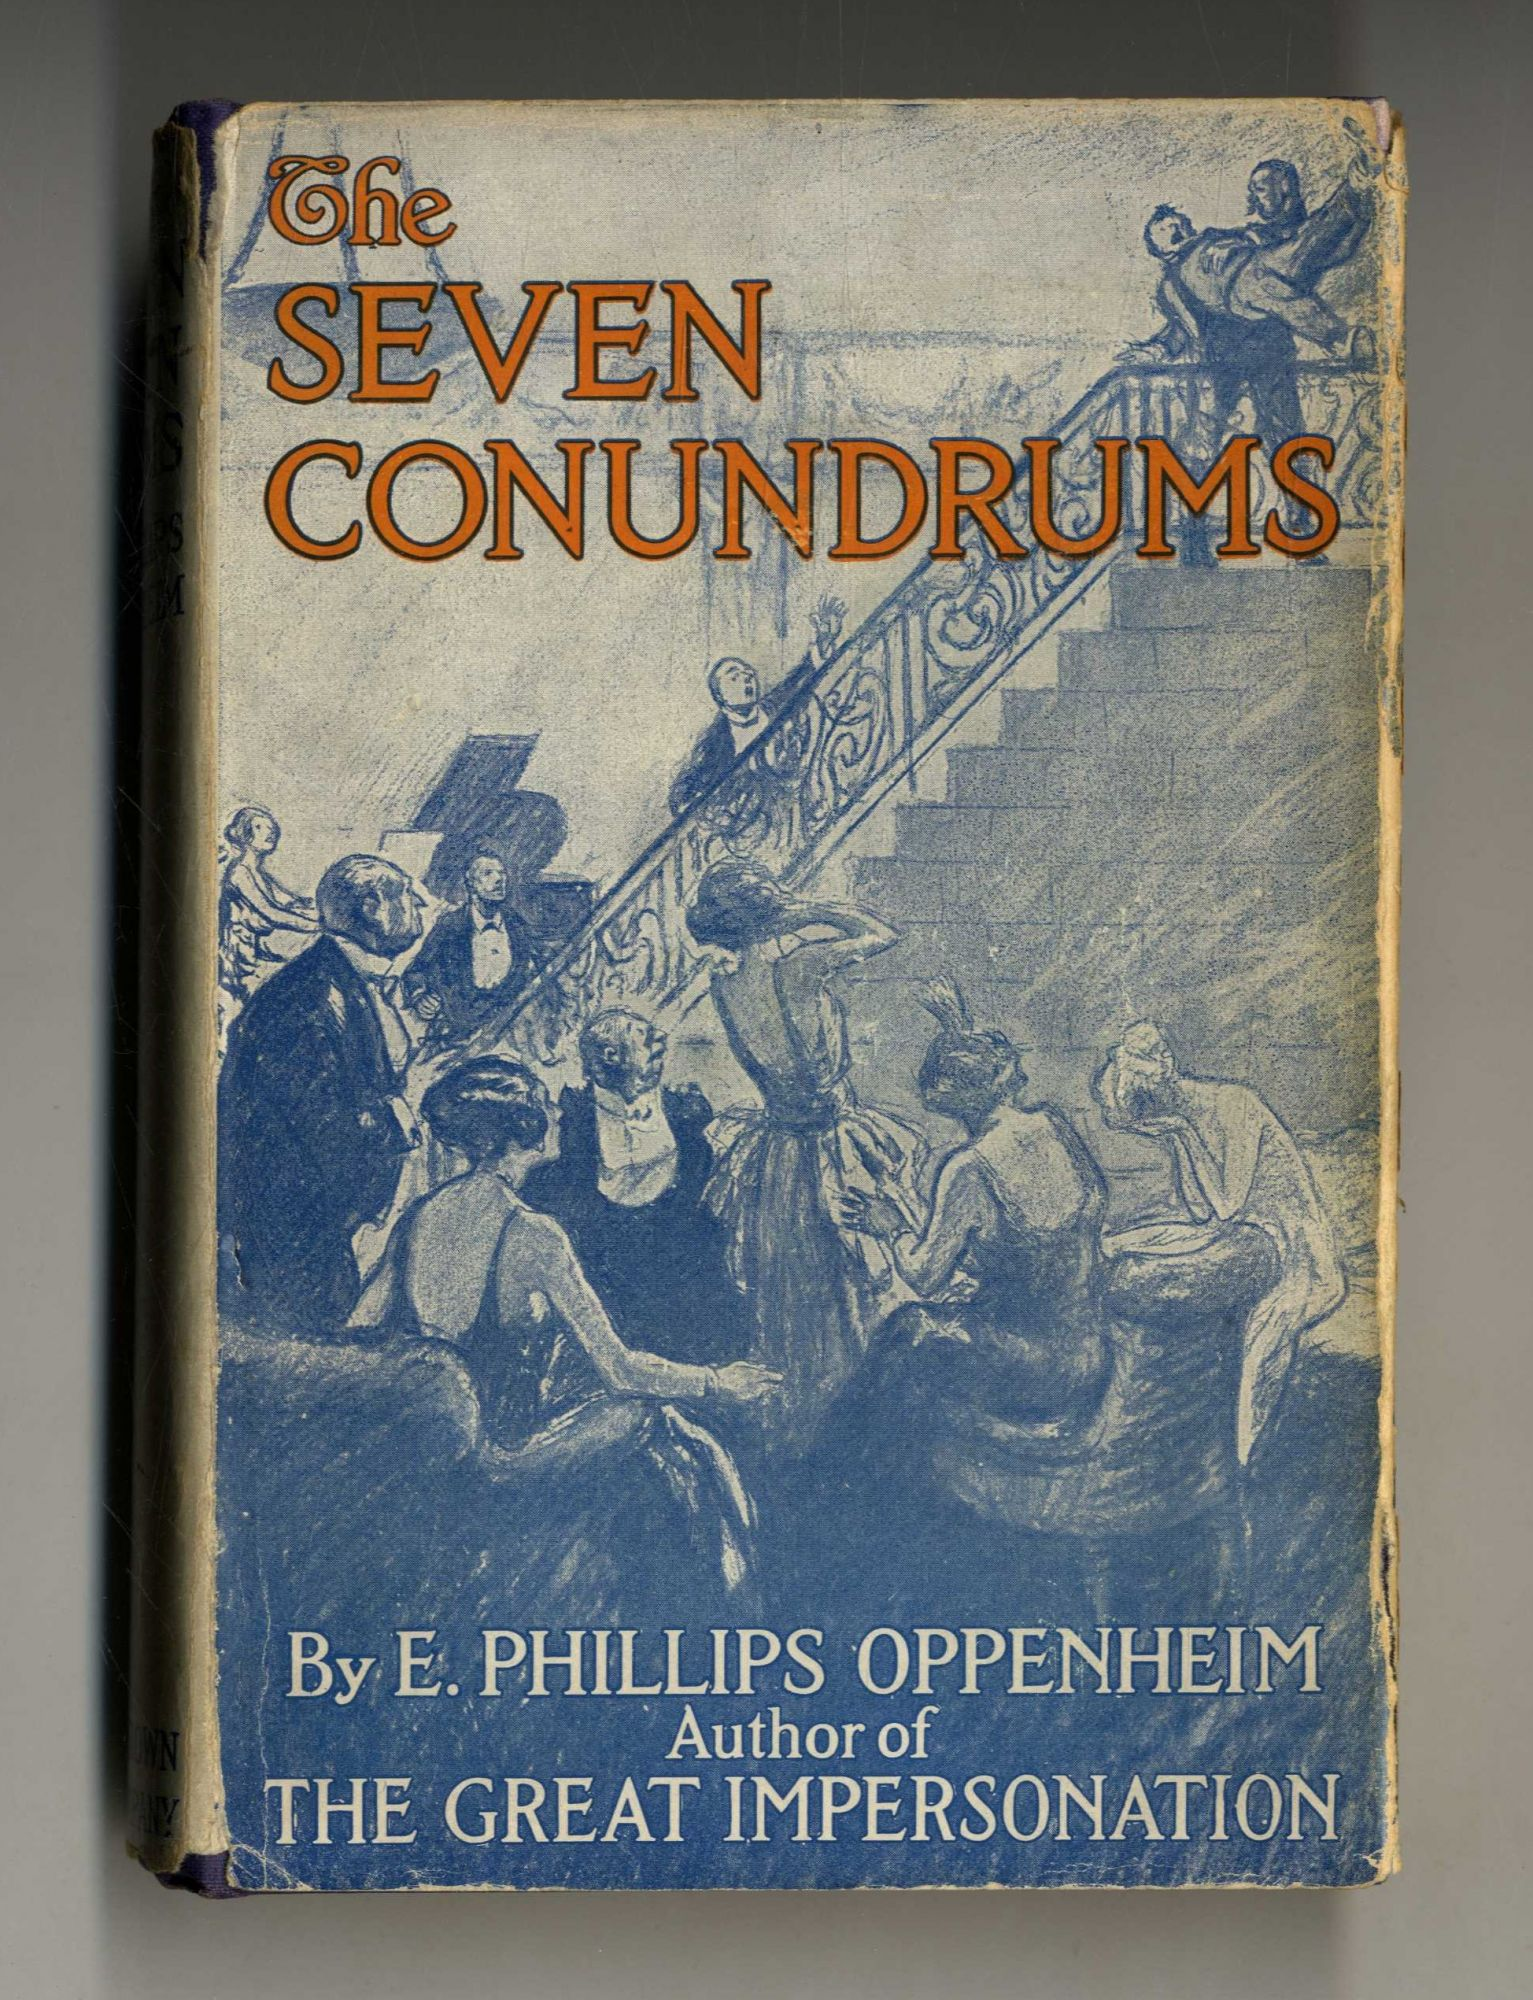 The Seven Conundrums 1st Edition/1st Printing. E. Phillips Oppenheim.